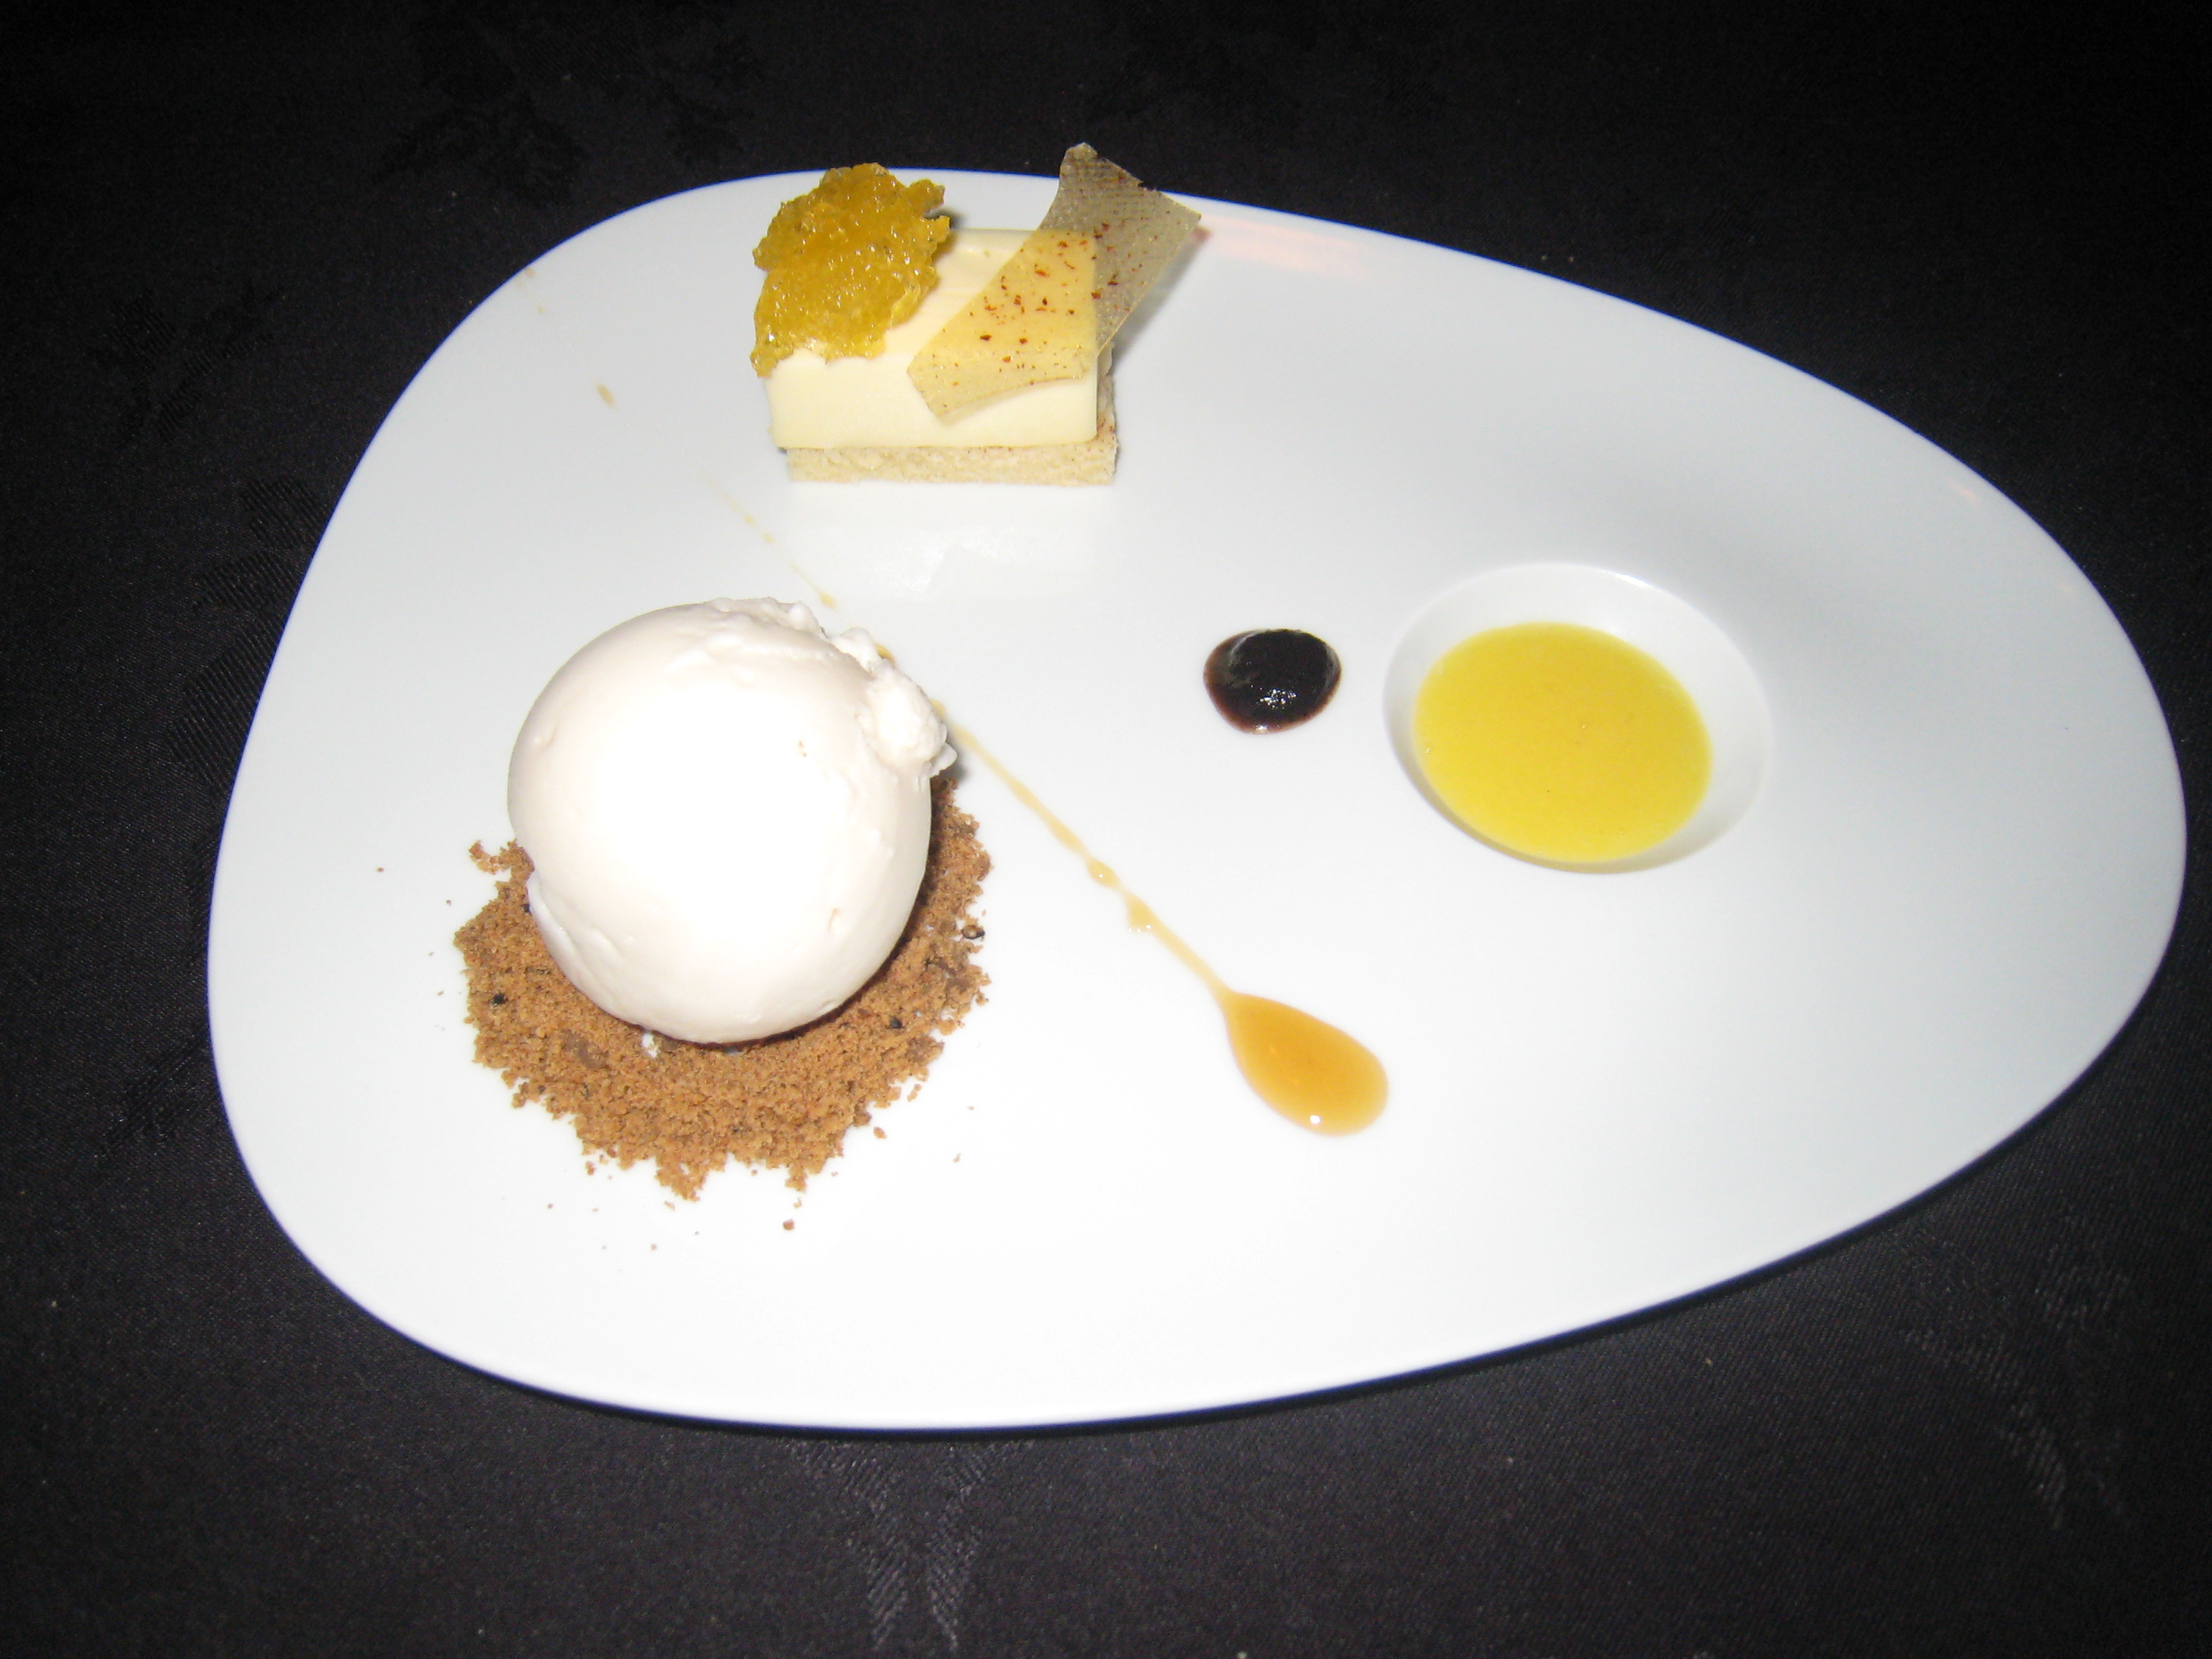 ... Mousse; mango, passion fruit gel, ginger iced milk, gingerbread crumbs